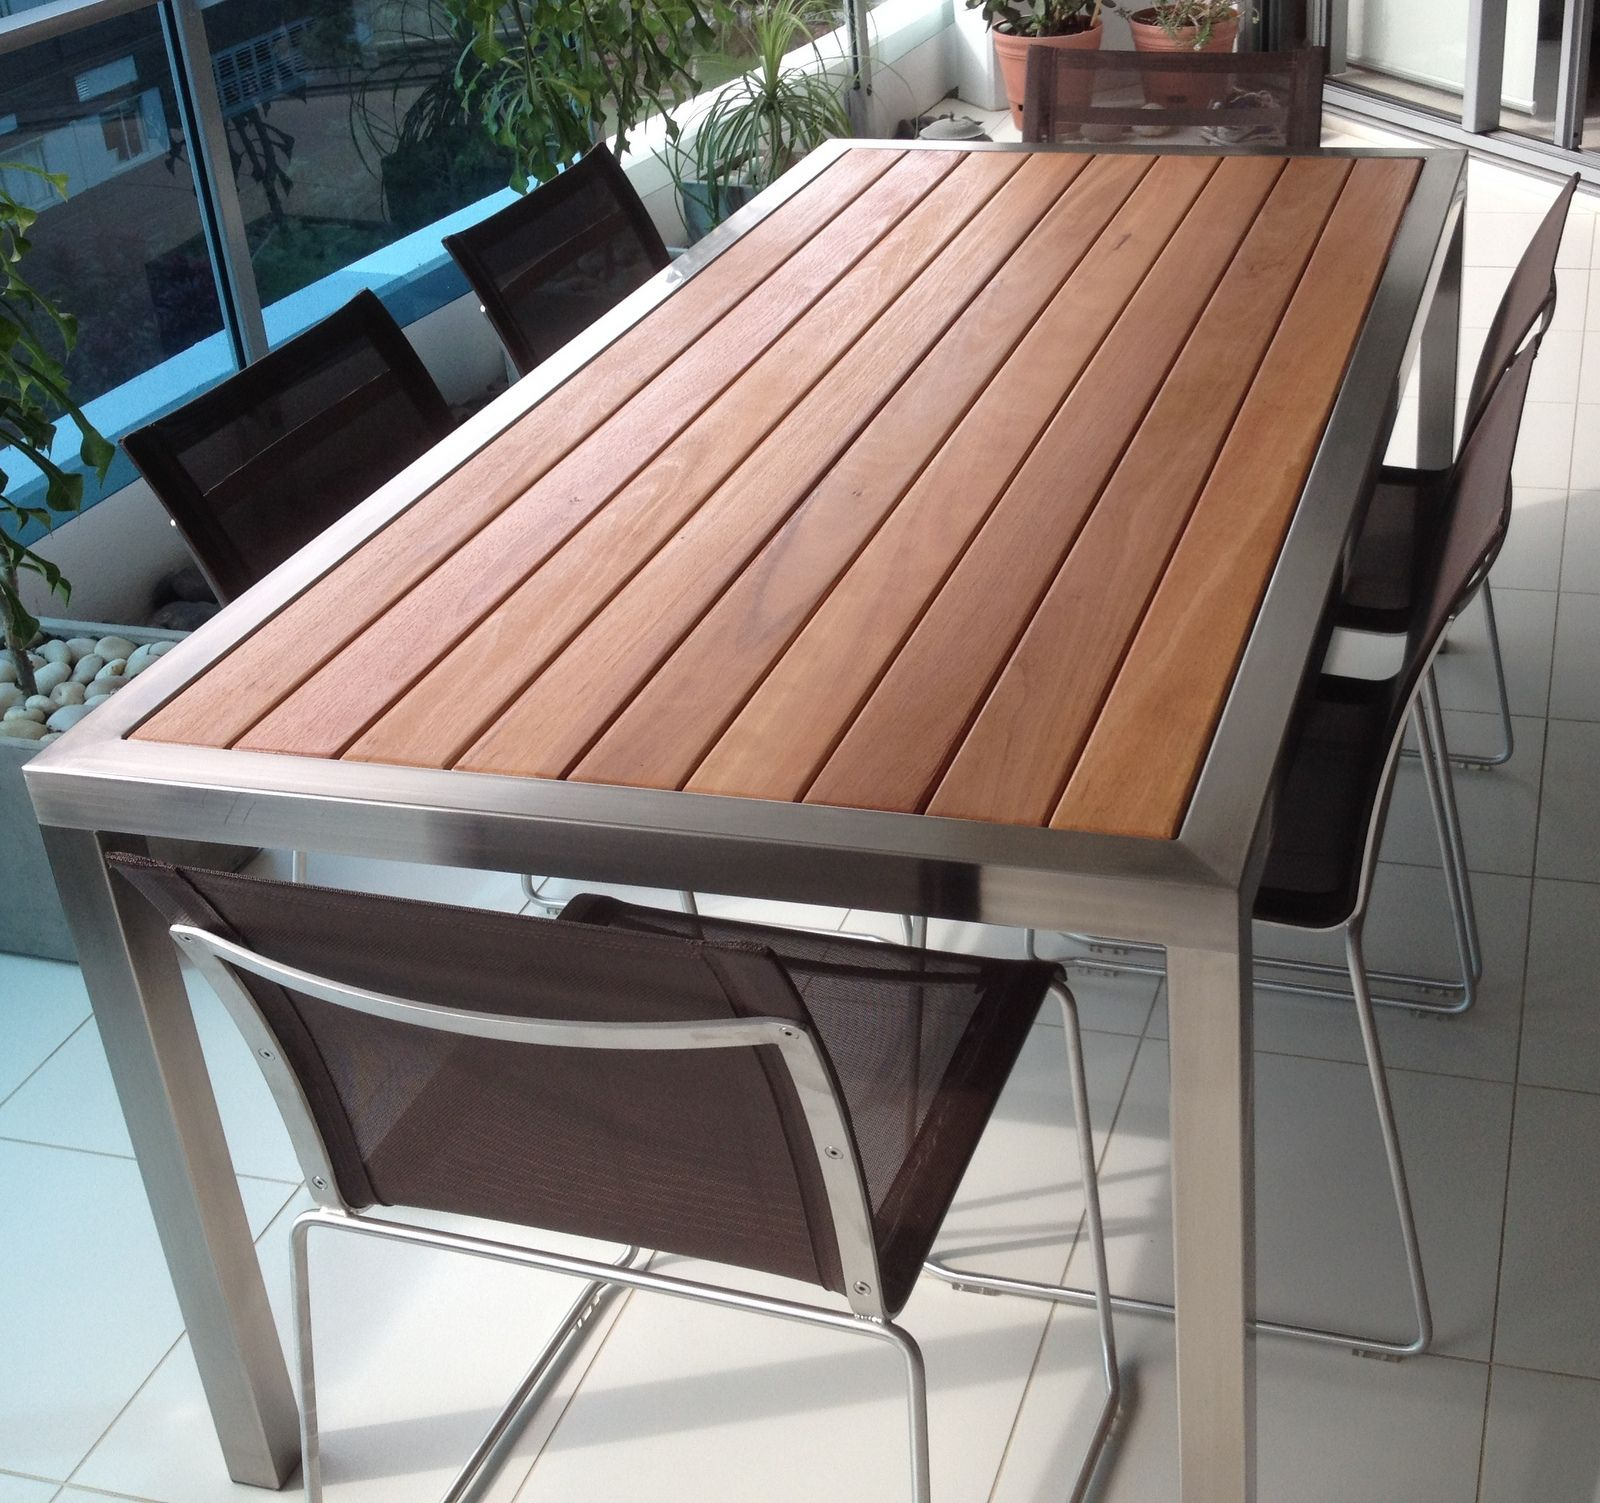 Galaxy Table - Outdoor Dining Tables Brisbane - Dining Tables ...